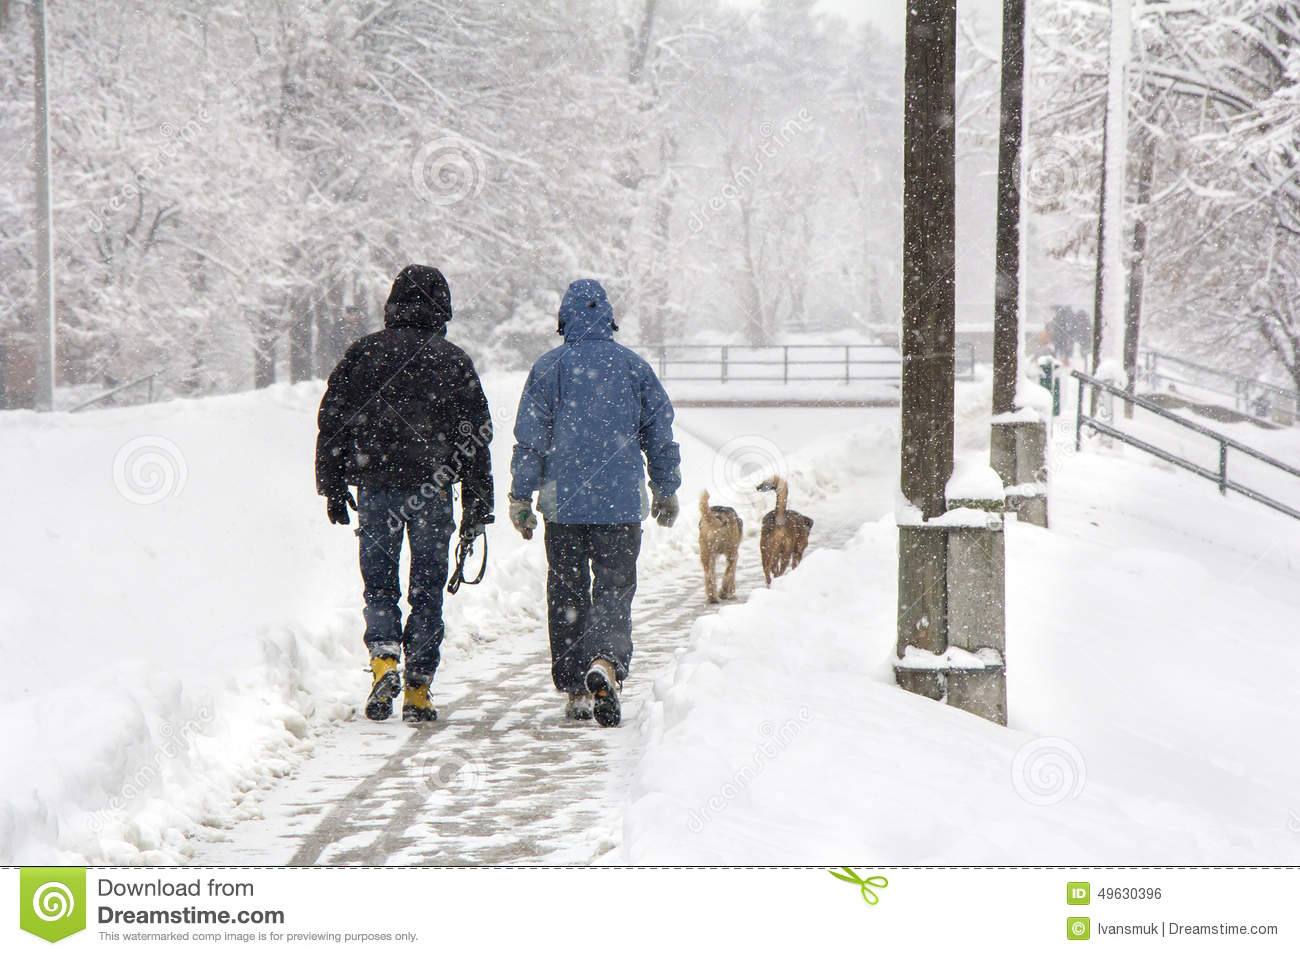 walking in the snow - photo #8